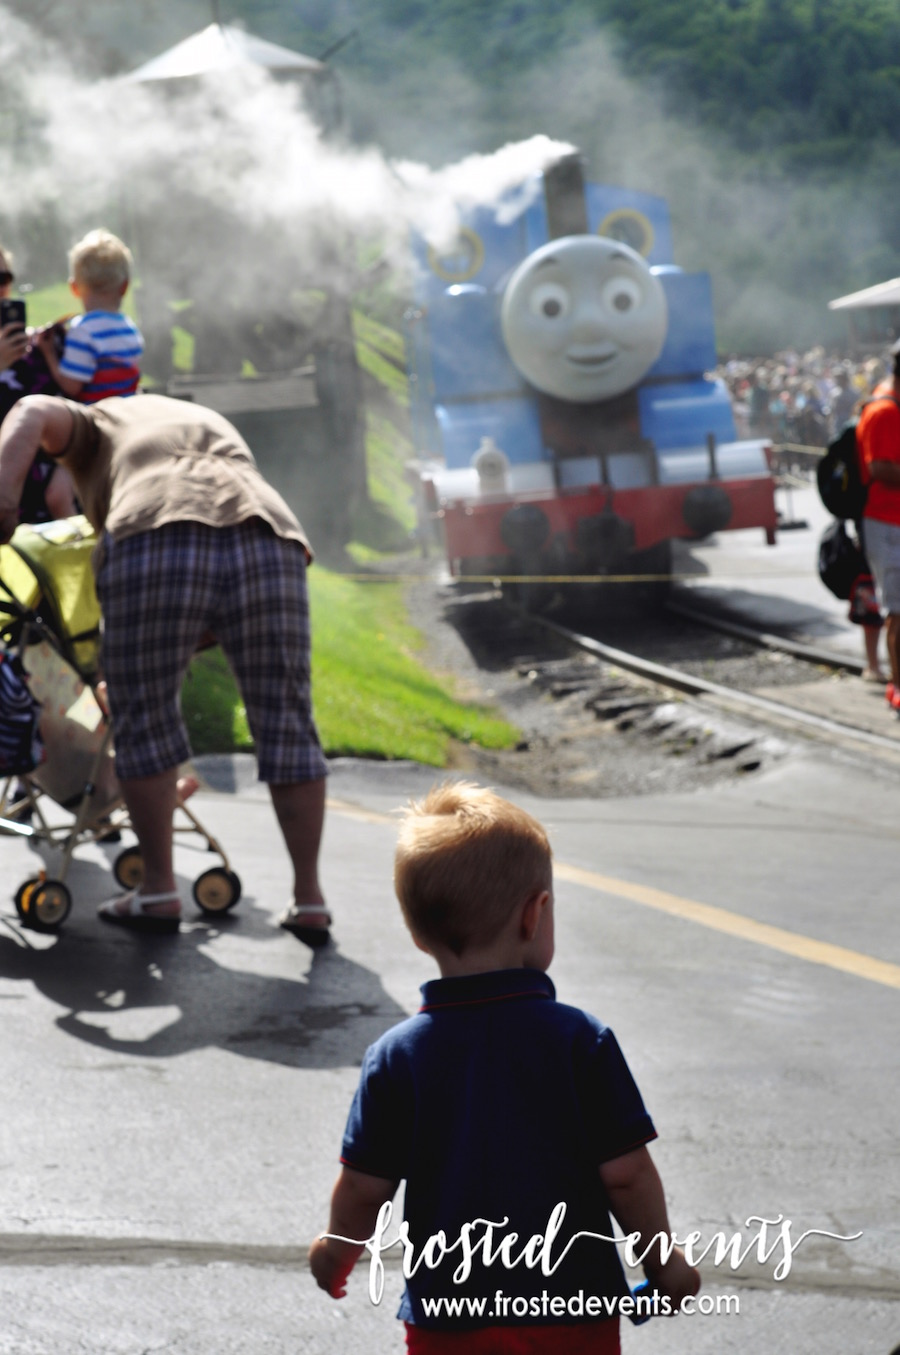 Day Out with Thomas the Train Review- Frosted Events frostedevents.com